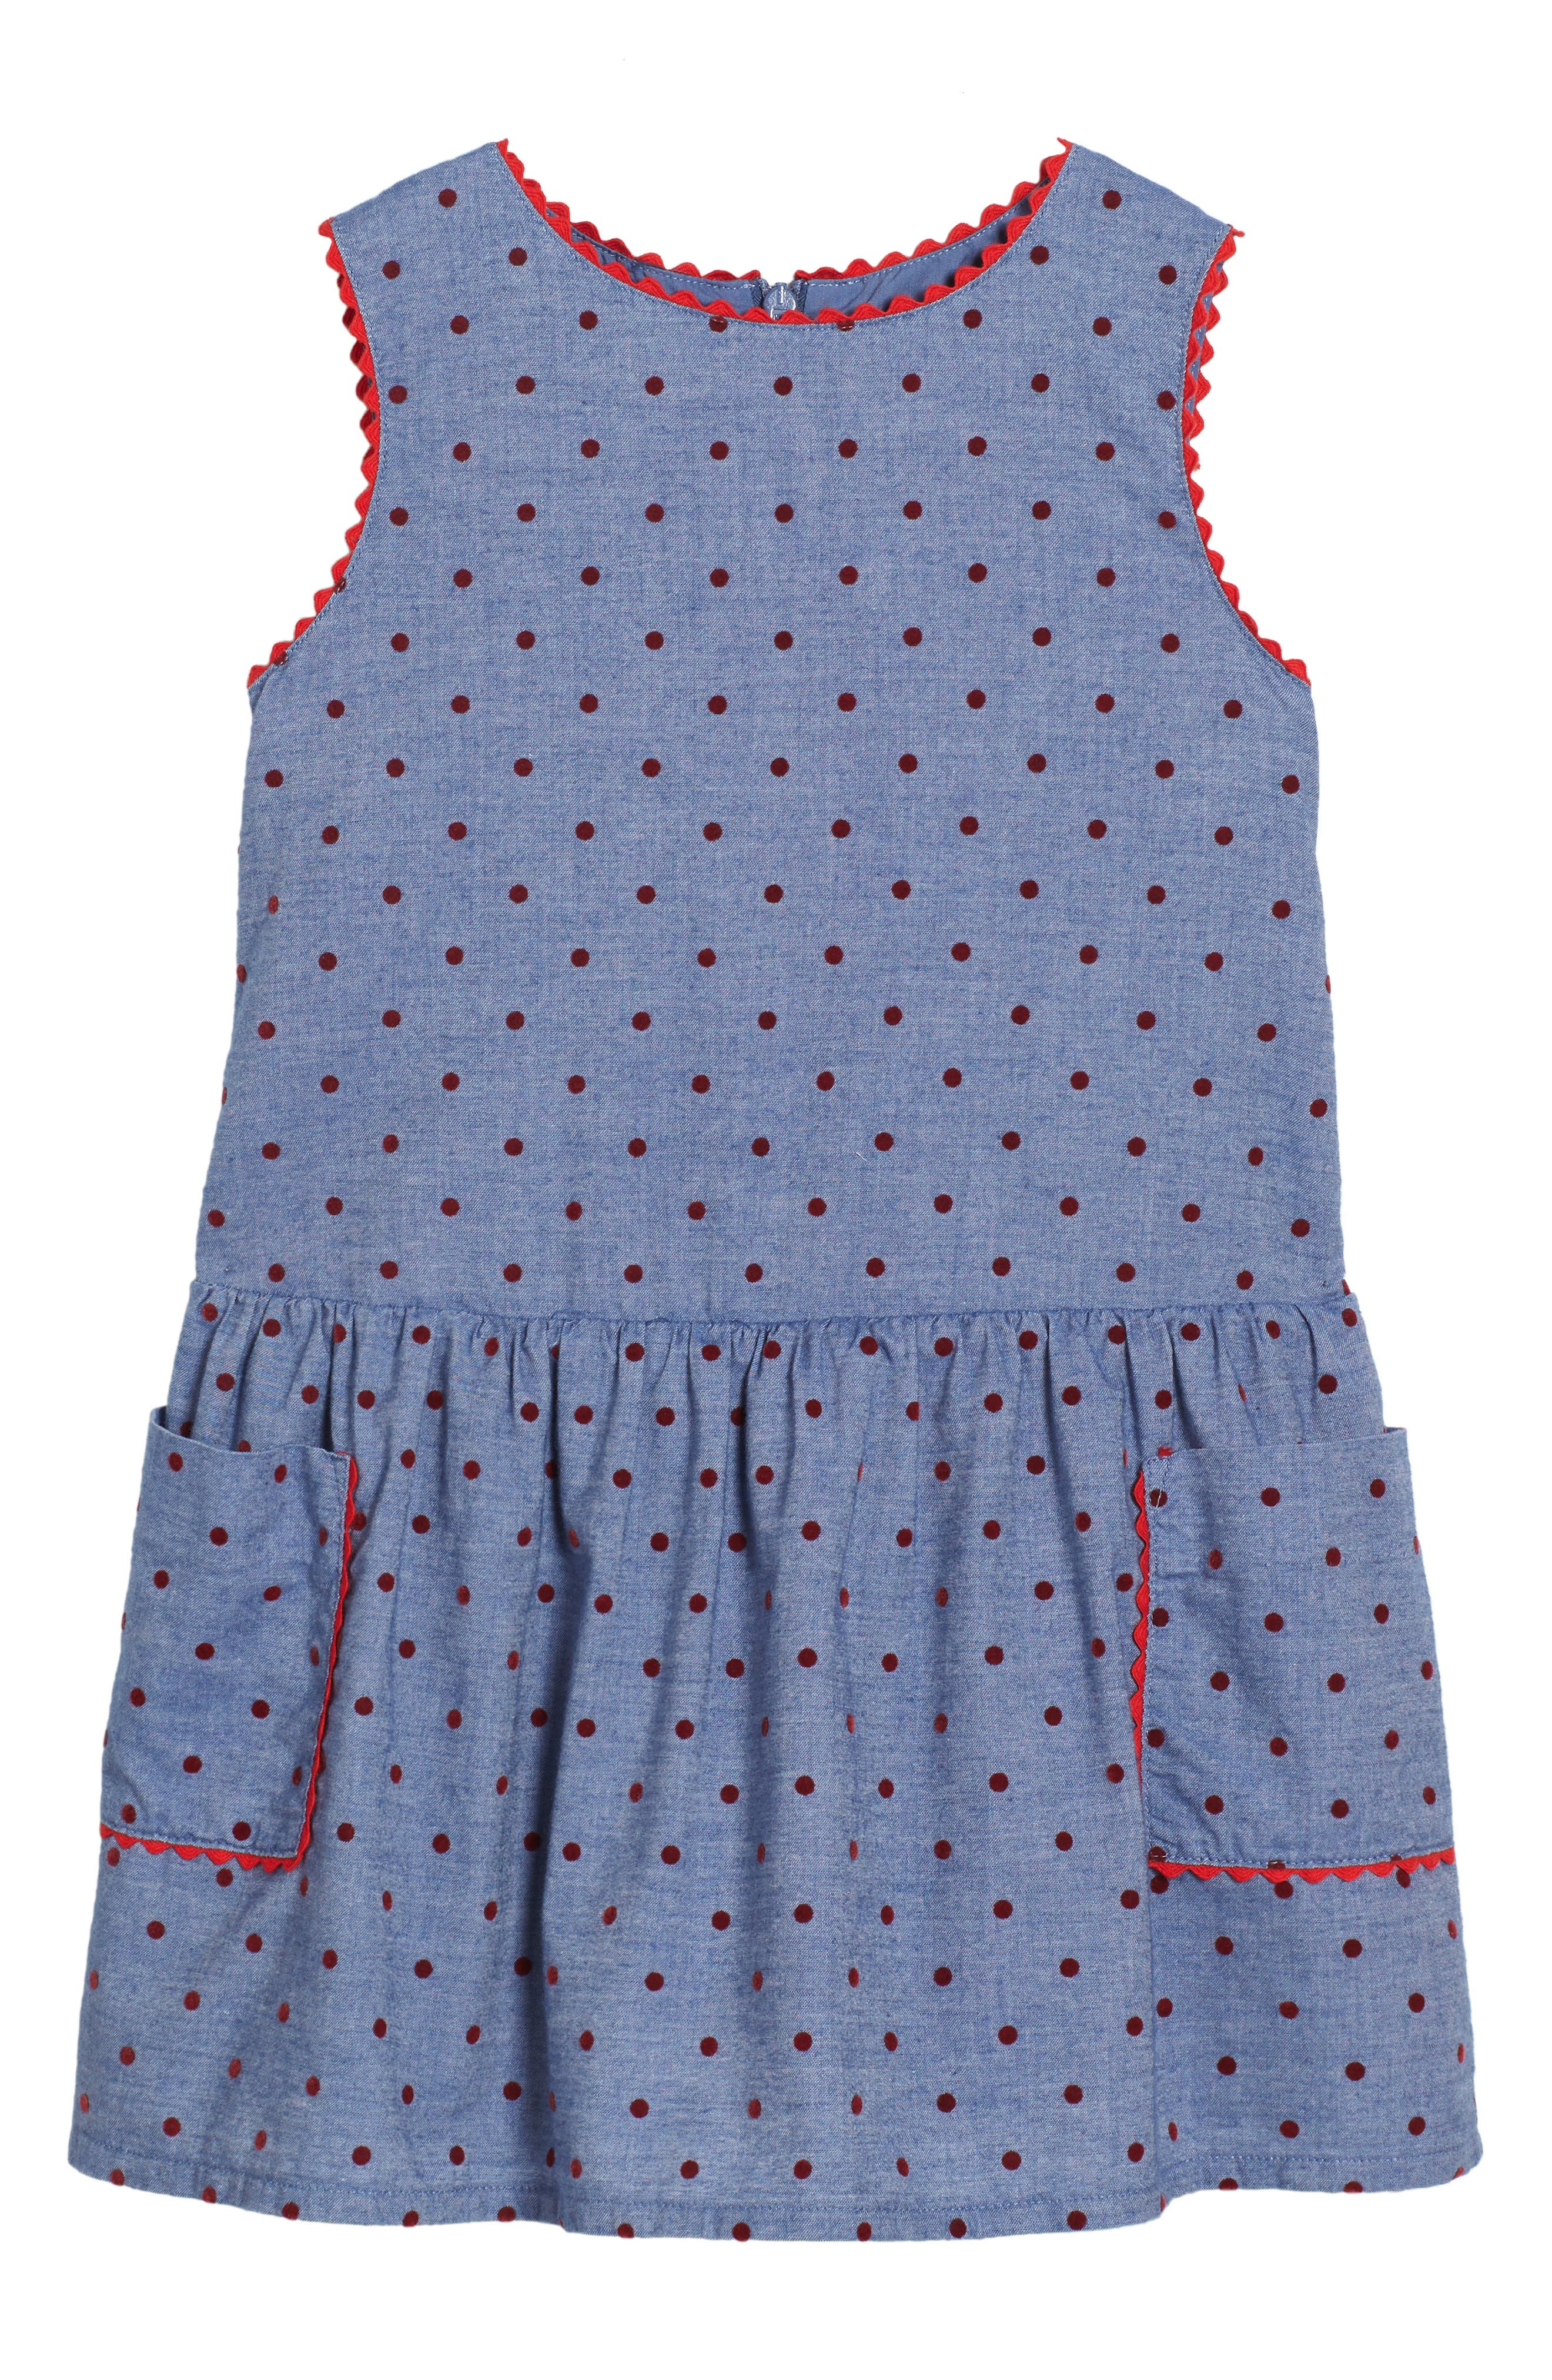 Mini Boden Plaid Pinafore Dress (Toddler Girls, Little Girls & Big Girls)